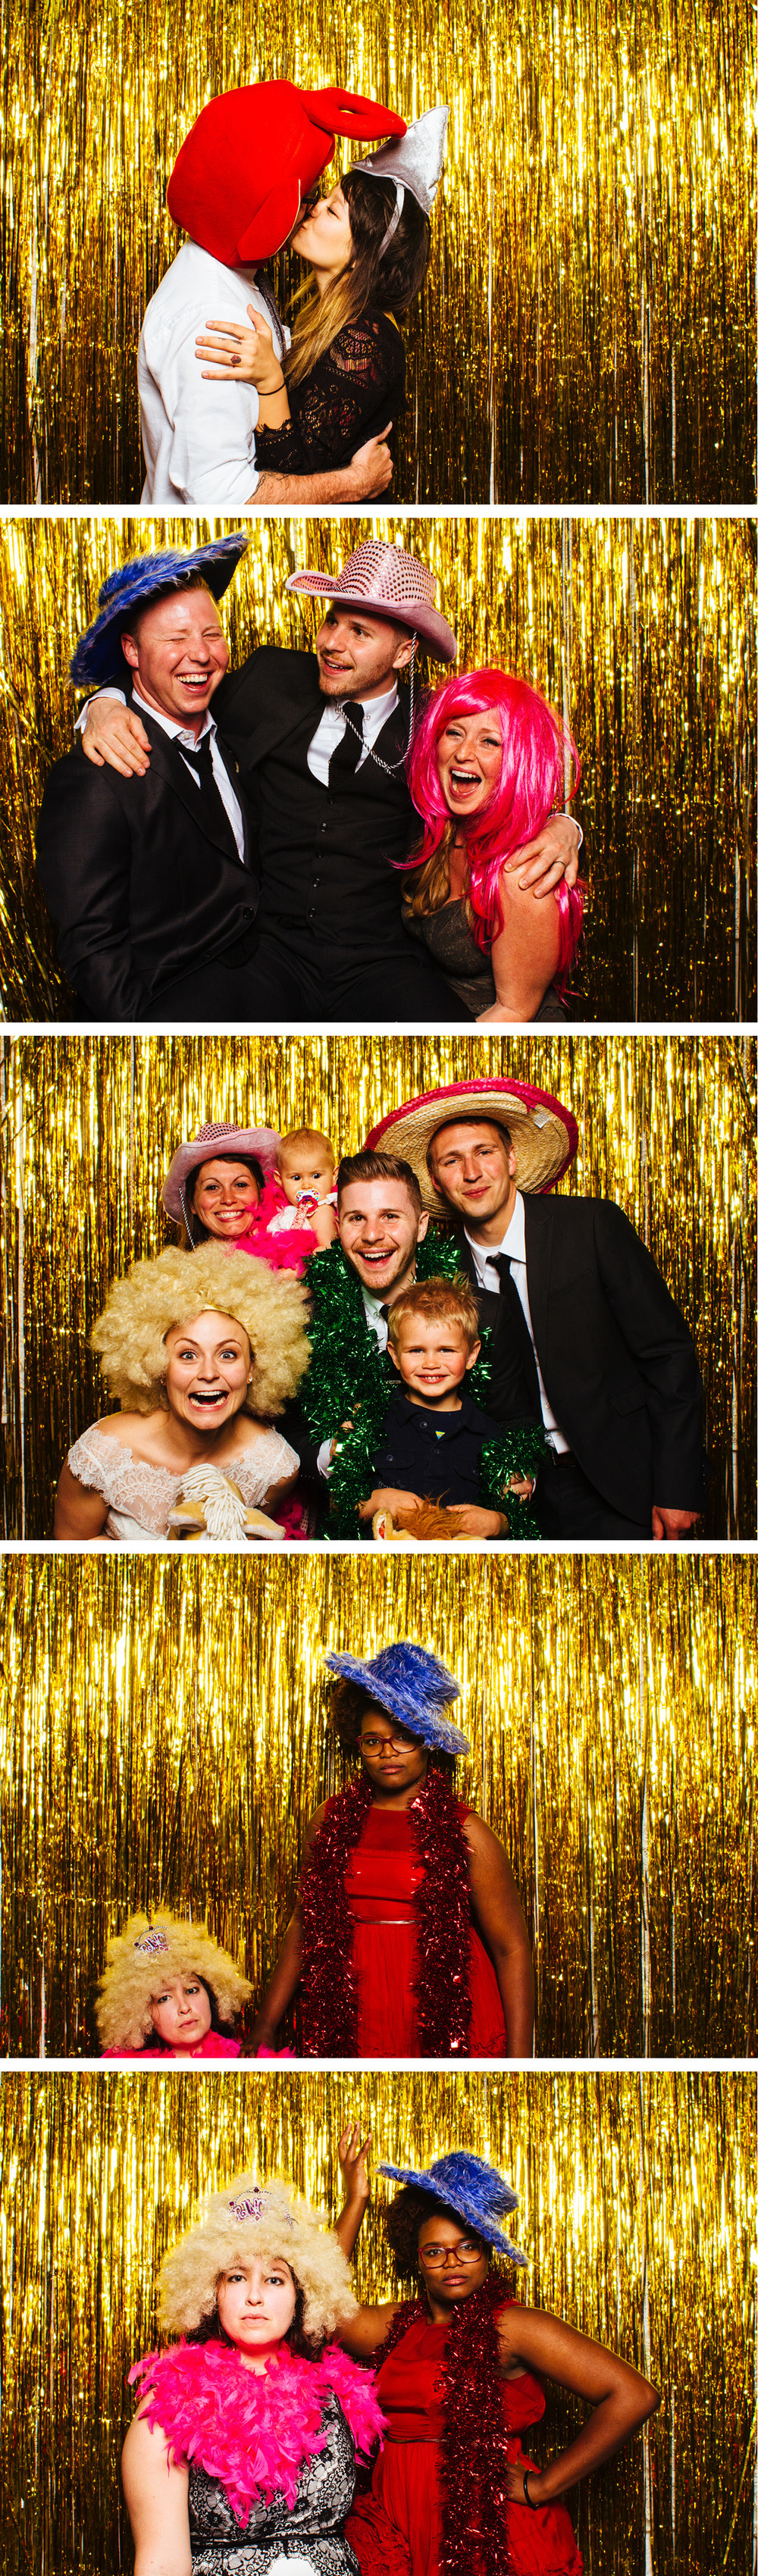 CK-Photo-Nashville-Wedding-Photographer-Photobooth-DL7.jpg